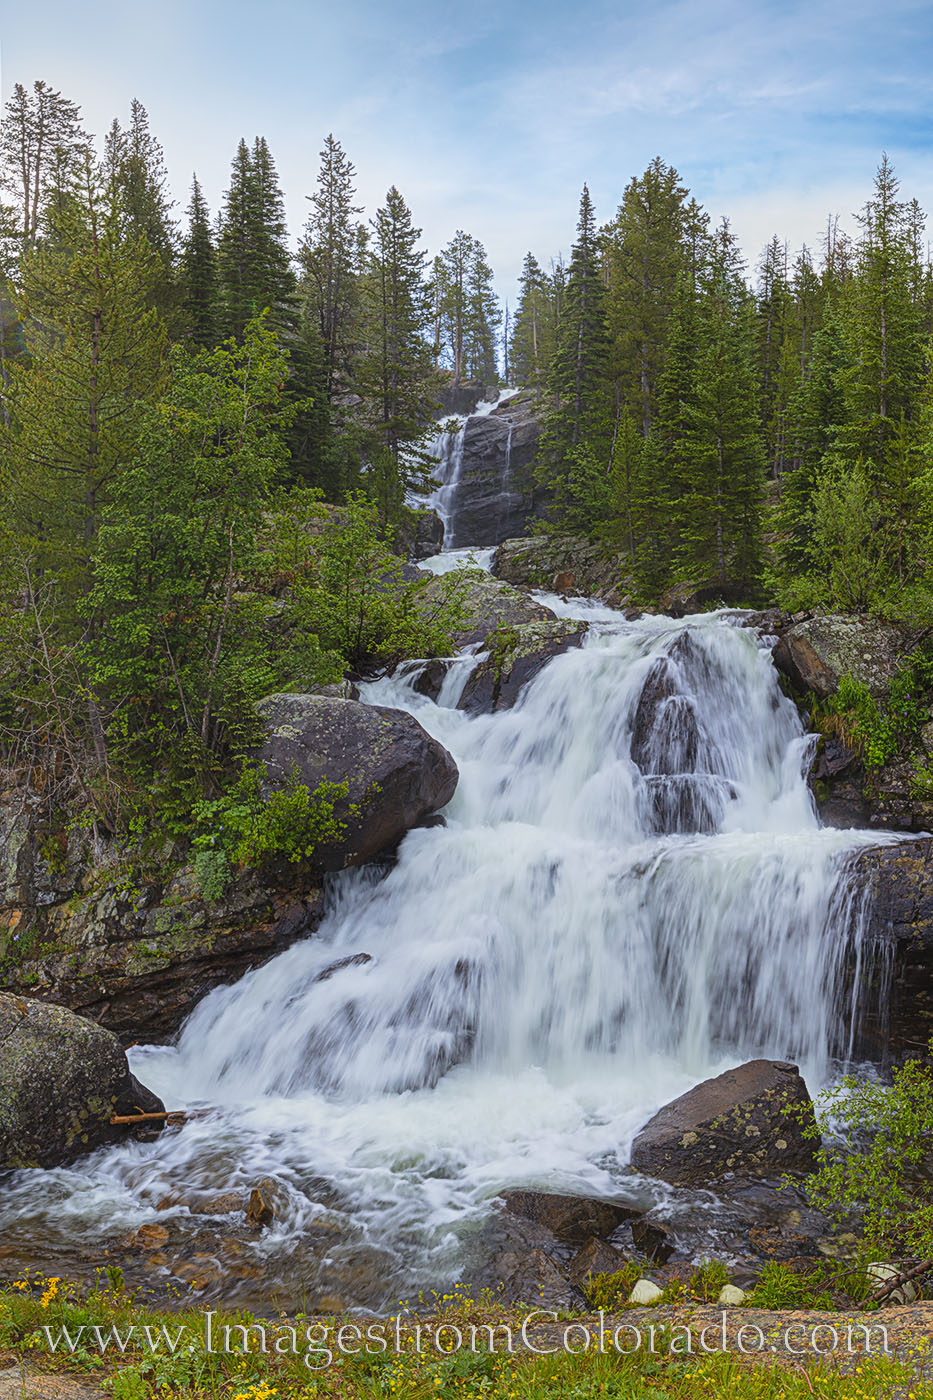 cascade falls, grand county, monarch lake, lone eagle peak, eagle peak, hiking colorado, waterfall, summer, photo